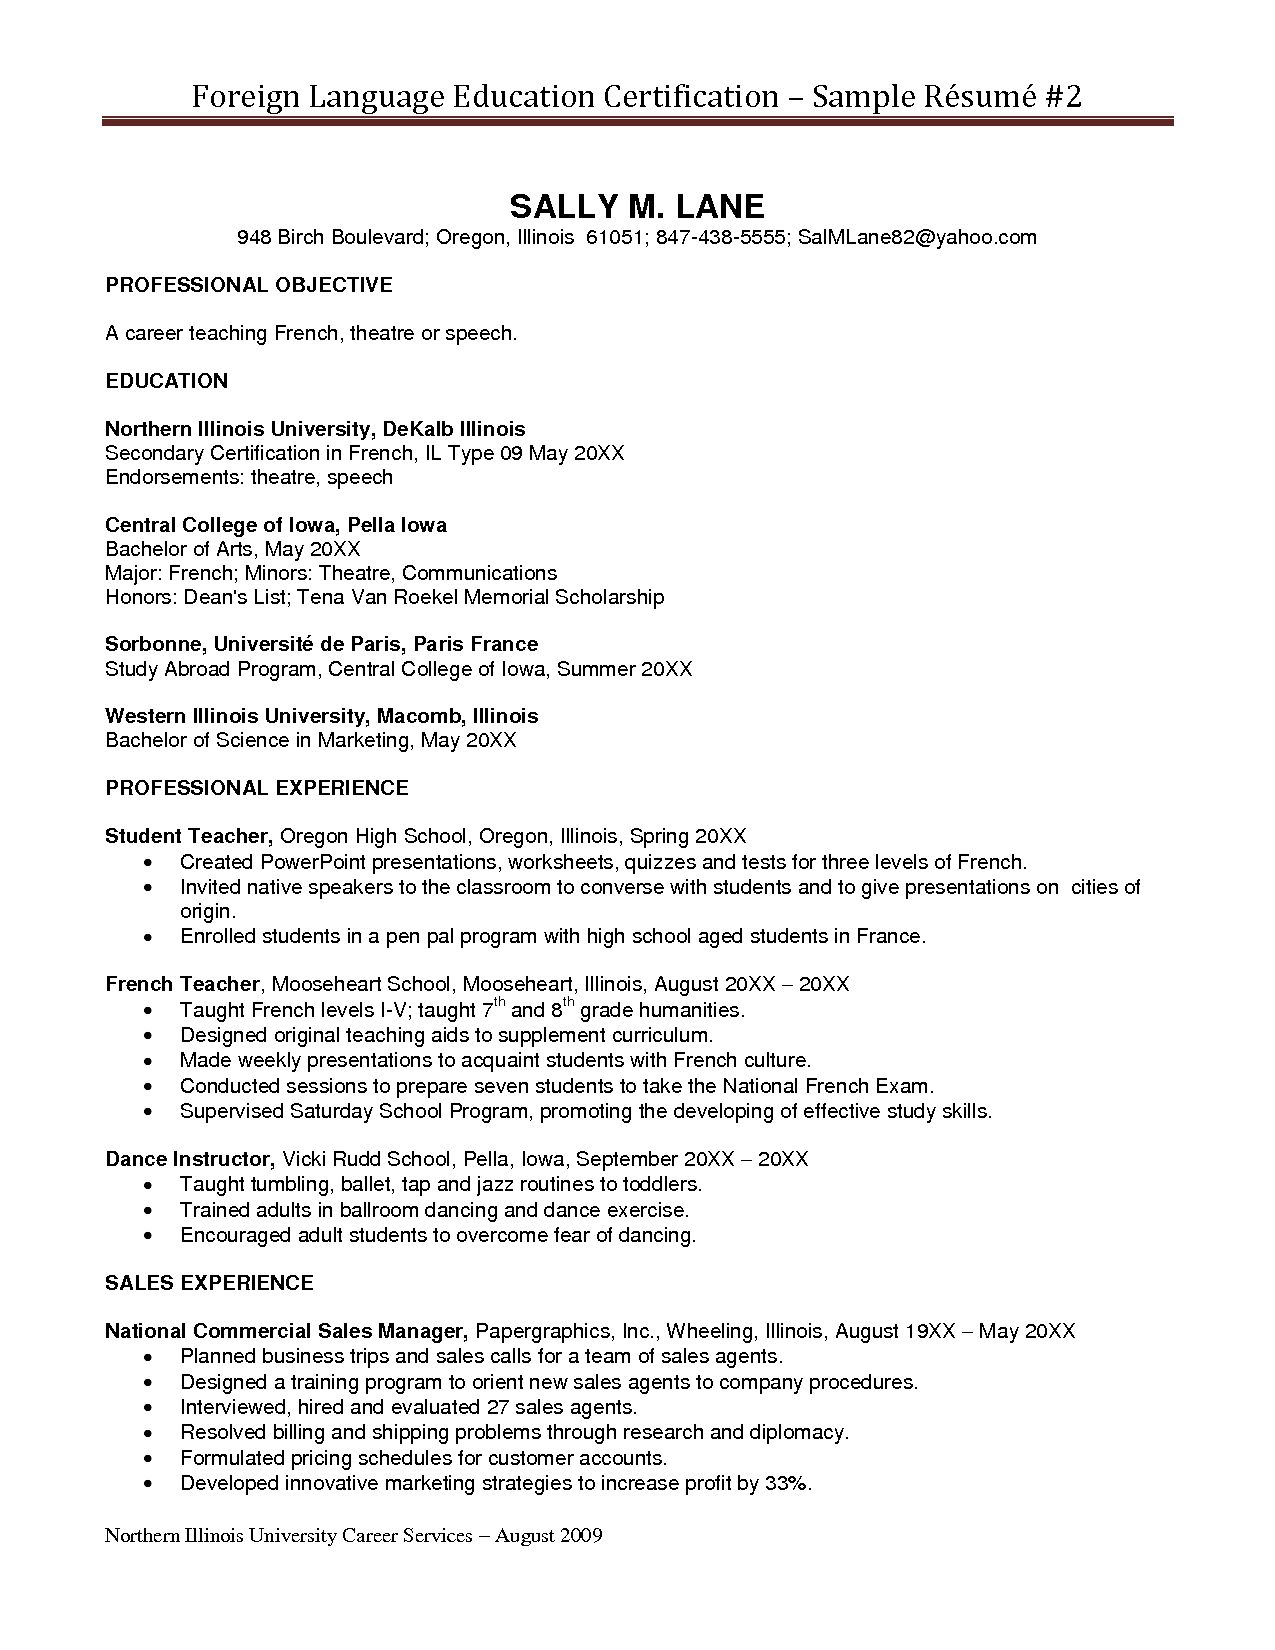 Certifications On A Resume Certification On Resume Example 0a11e7fb8